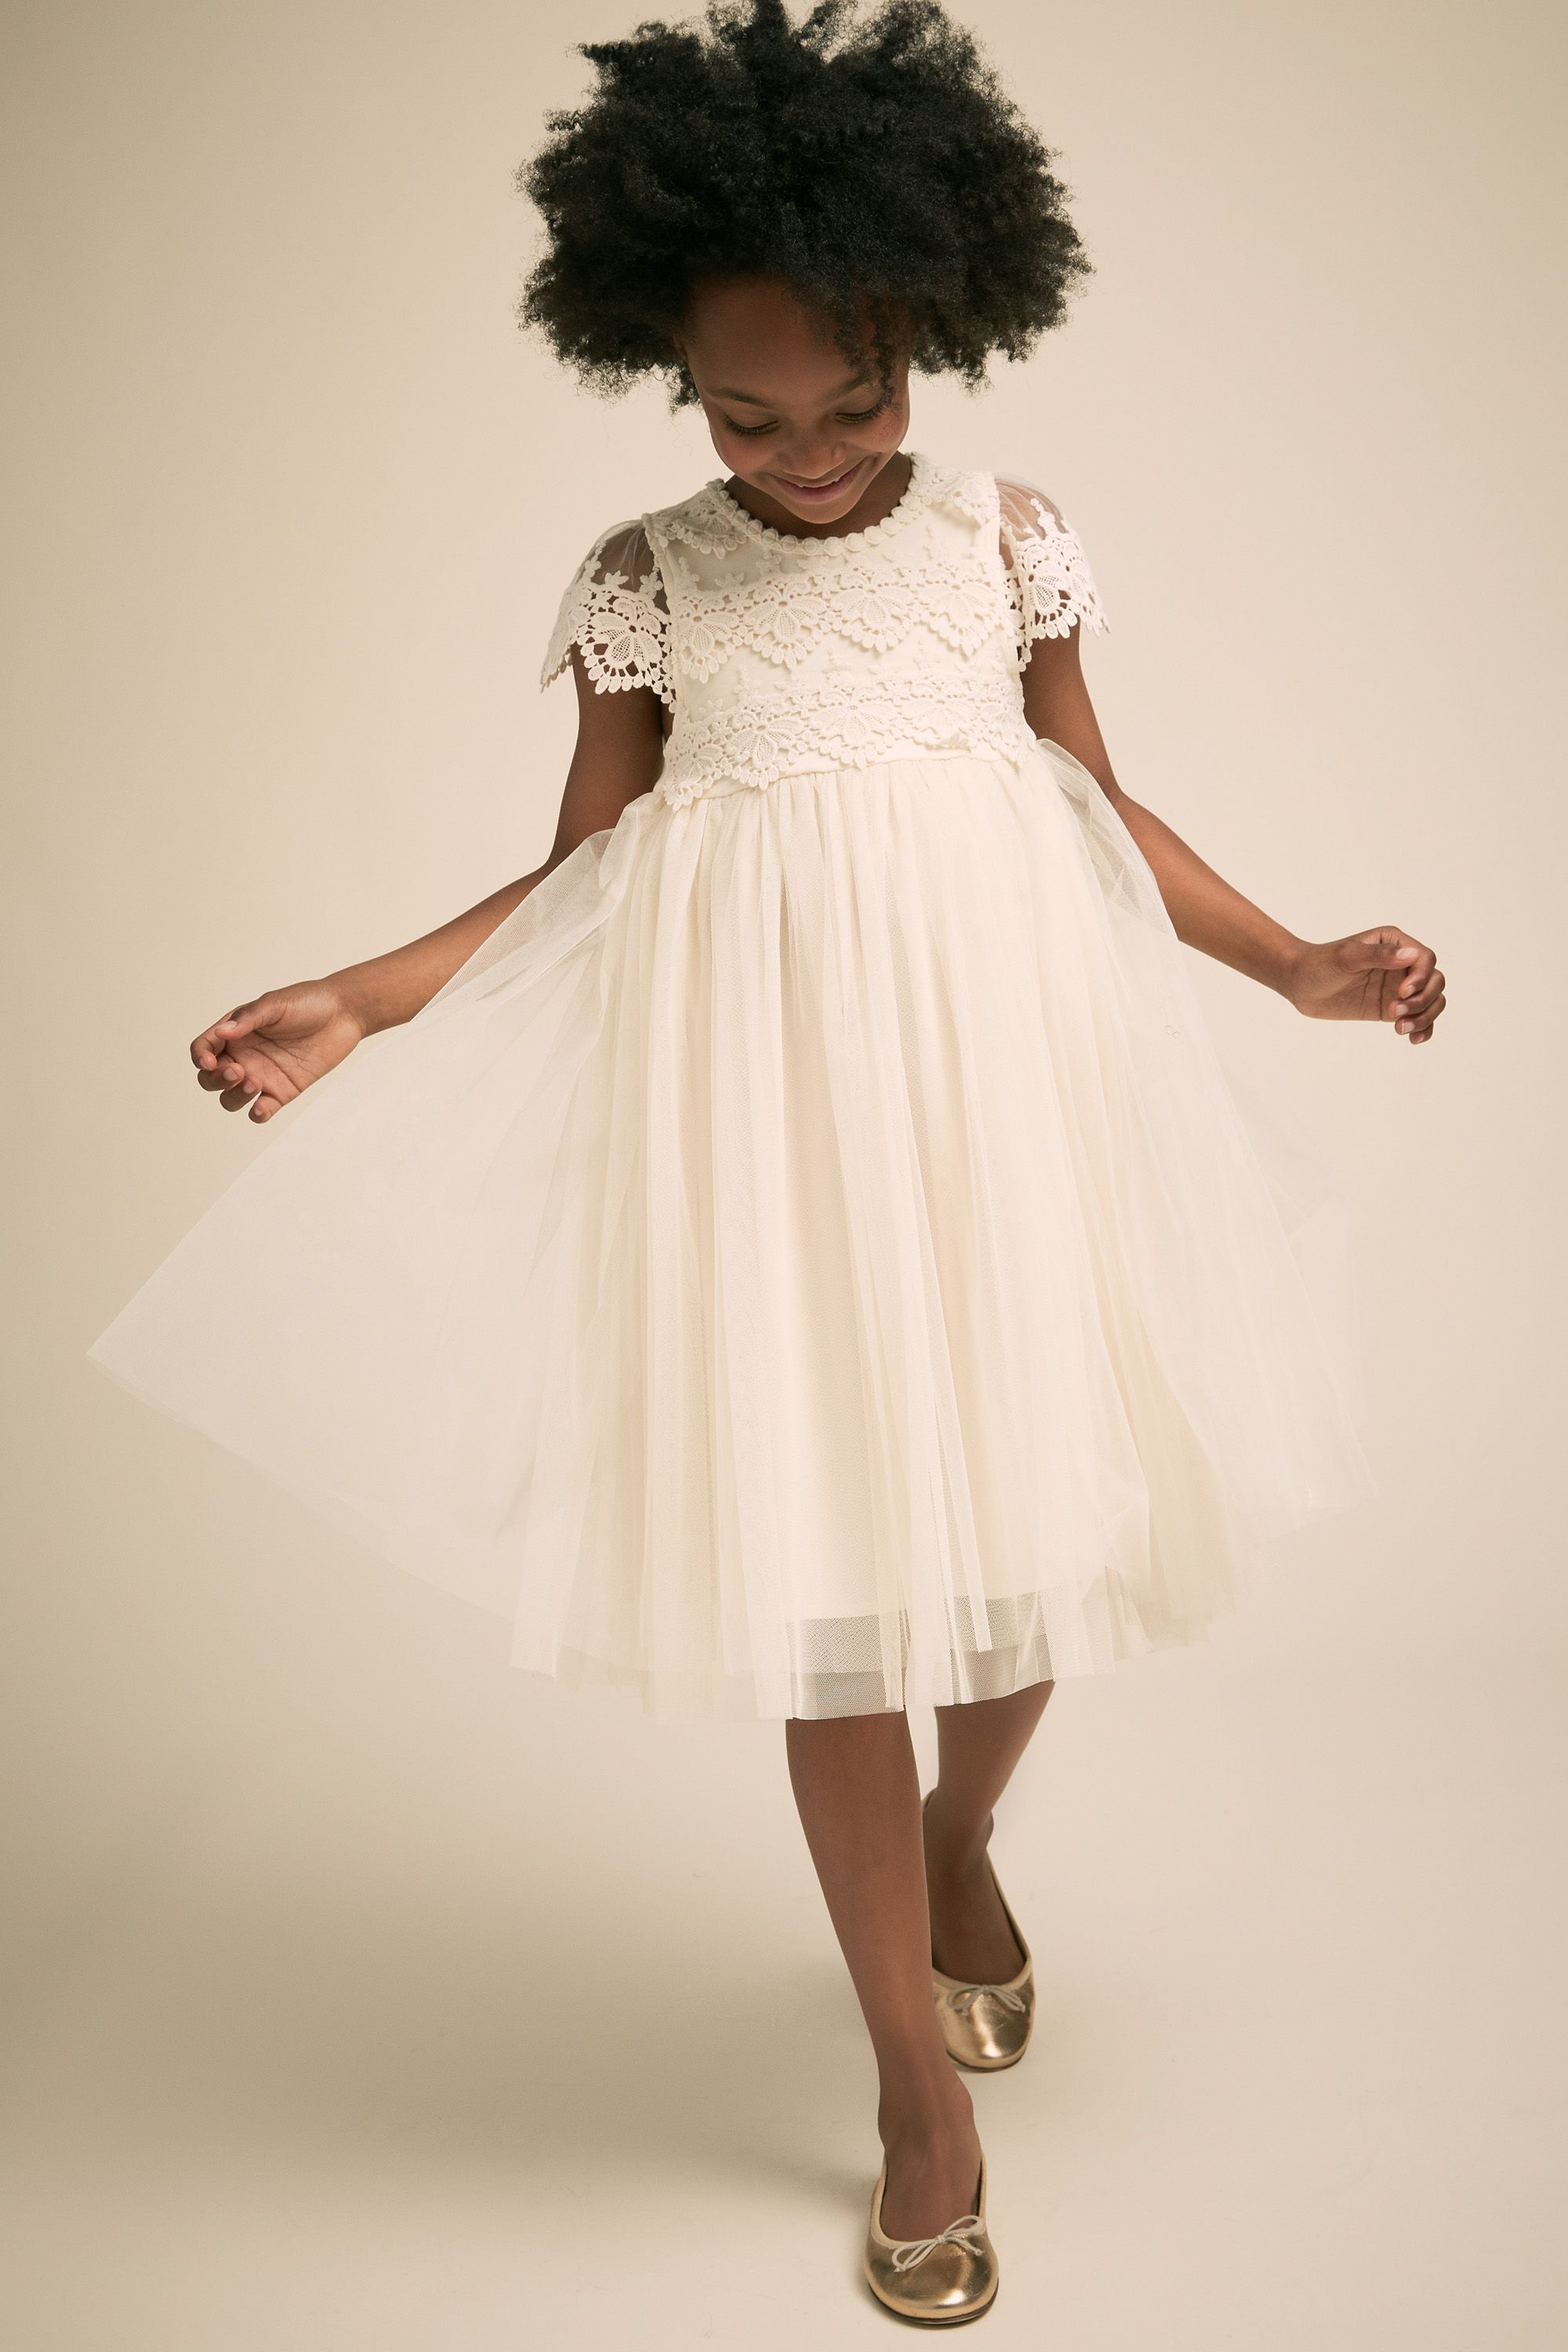 Flower girl dress ideas Kala ivory flower girl dress from BHLDN